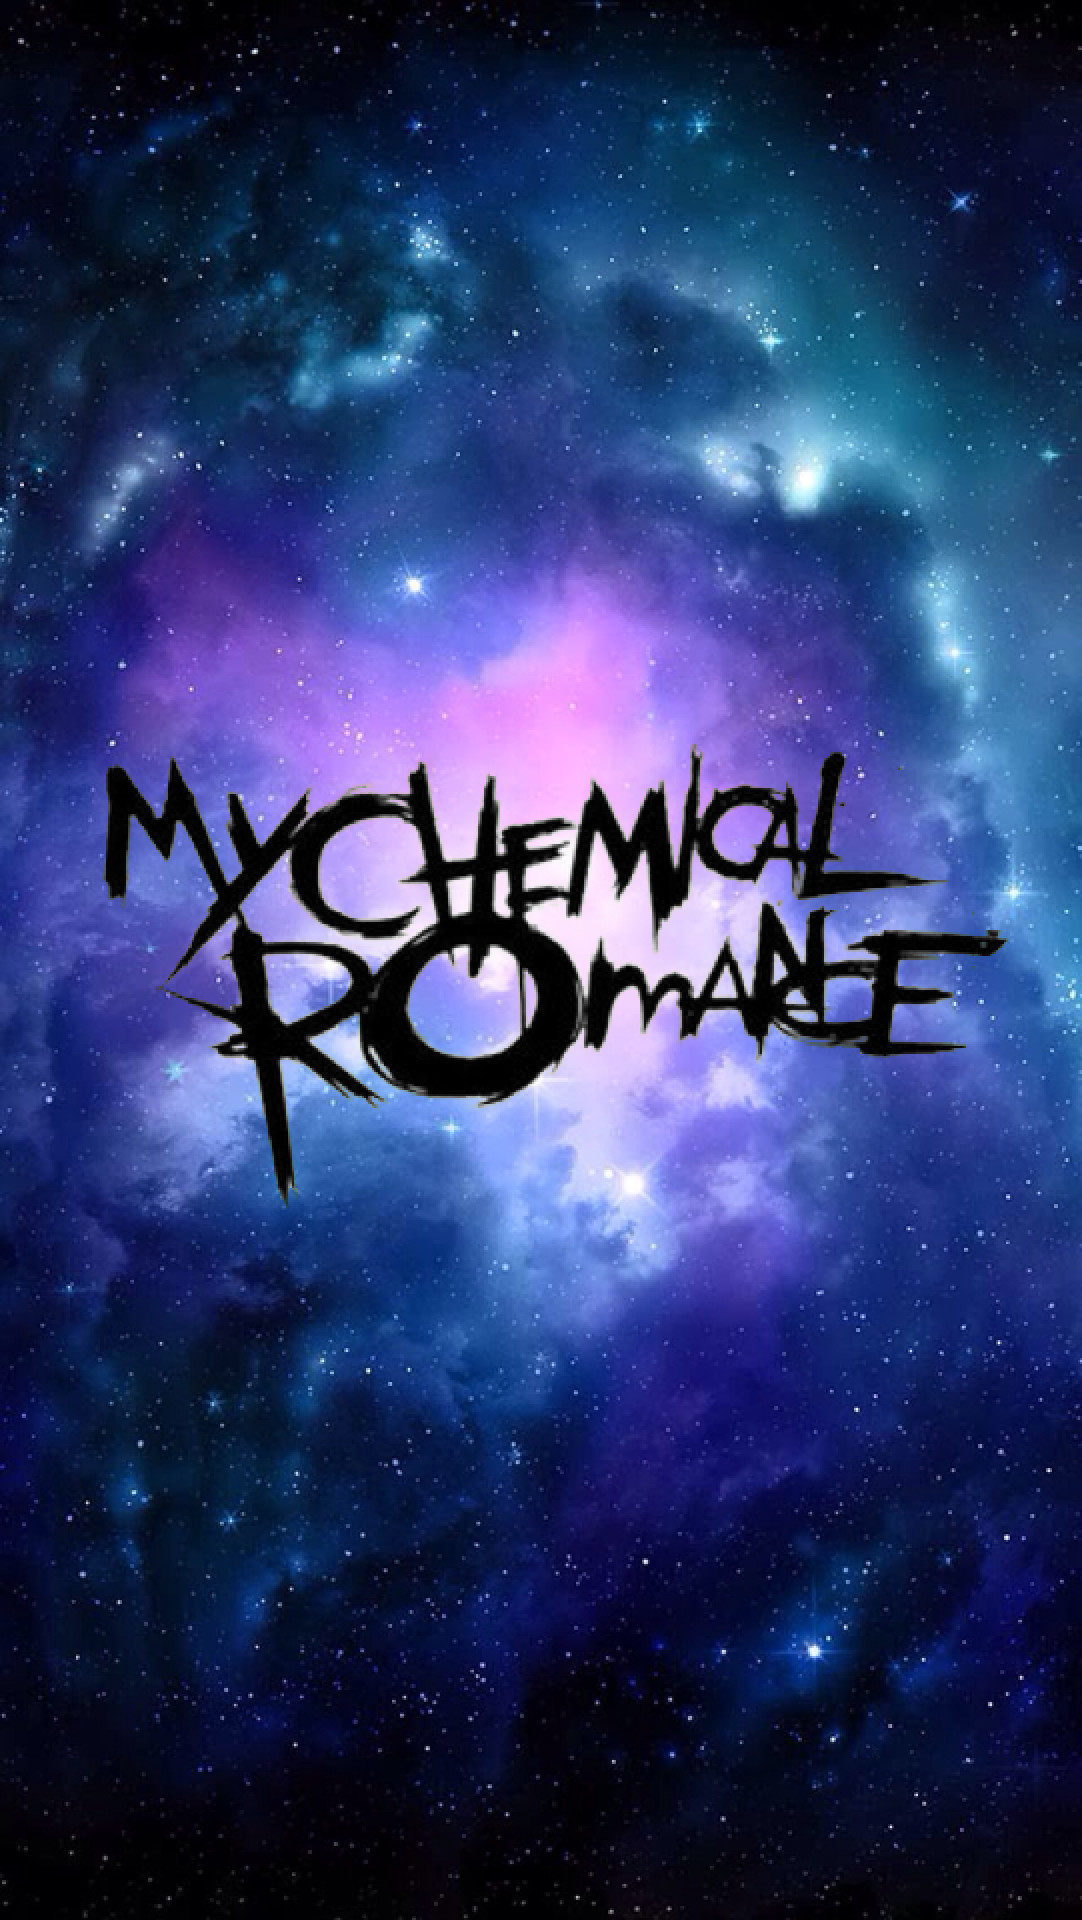 1082x1920 My Chemical Romance wallpaper for iPhone 5 that I made. Comment if you want  more